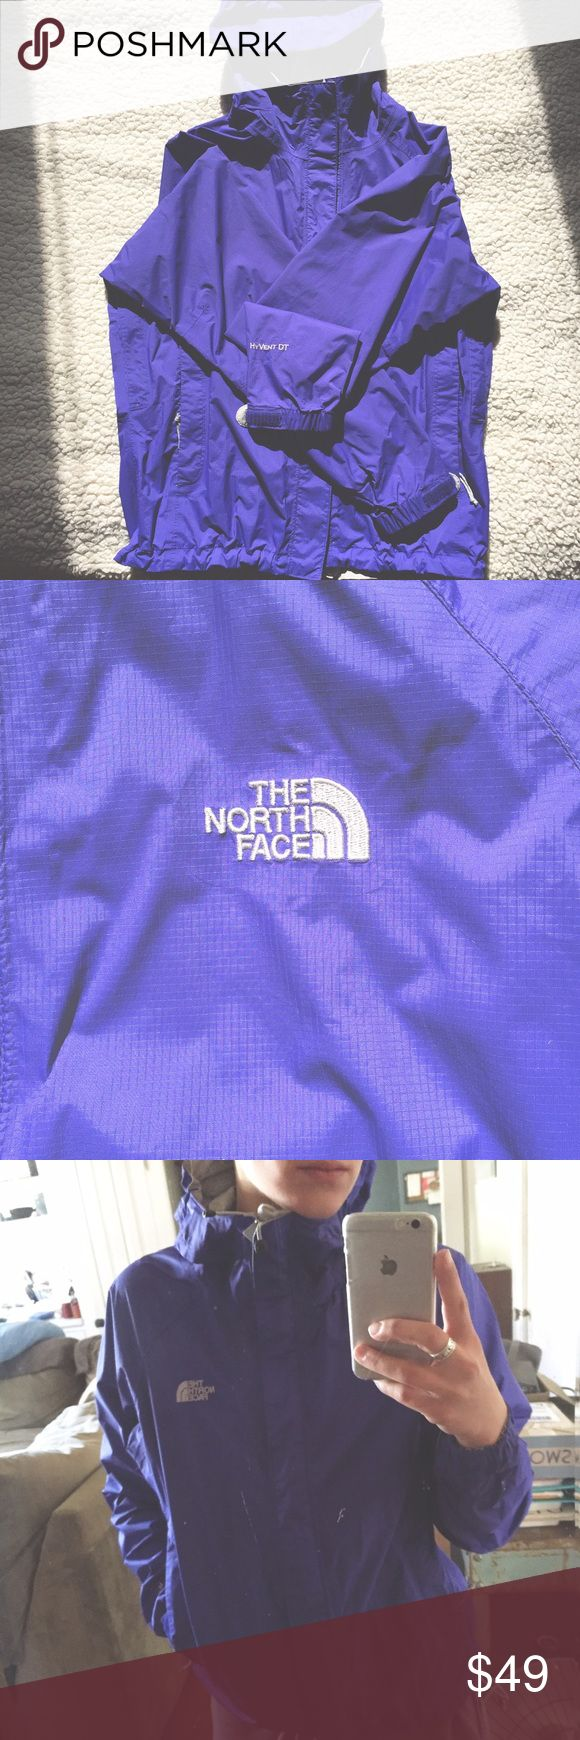 Indigo Northface Windbreaker HyventDT Gently worn, some wear on the inside, brand new from outside! North Face Jackets & Coats Utility Jackets                                                                                                                                                                                 Plus